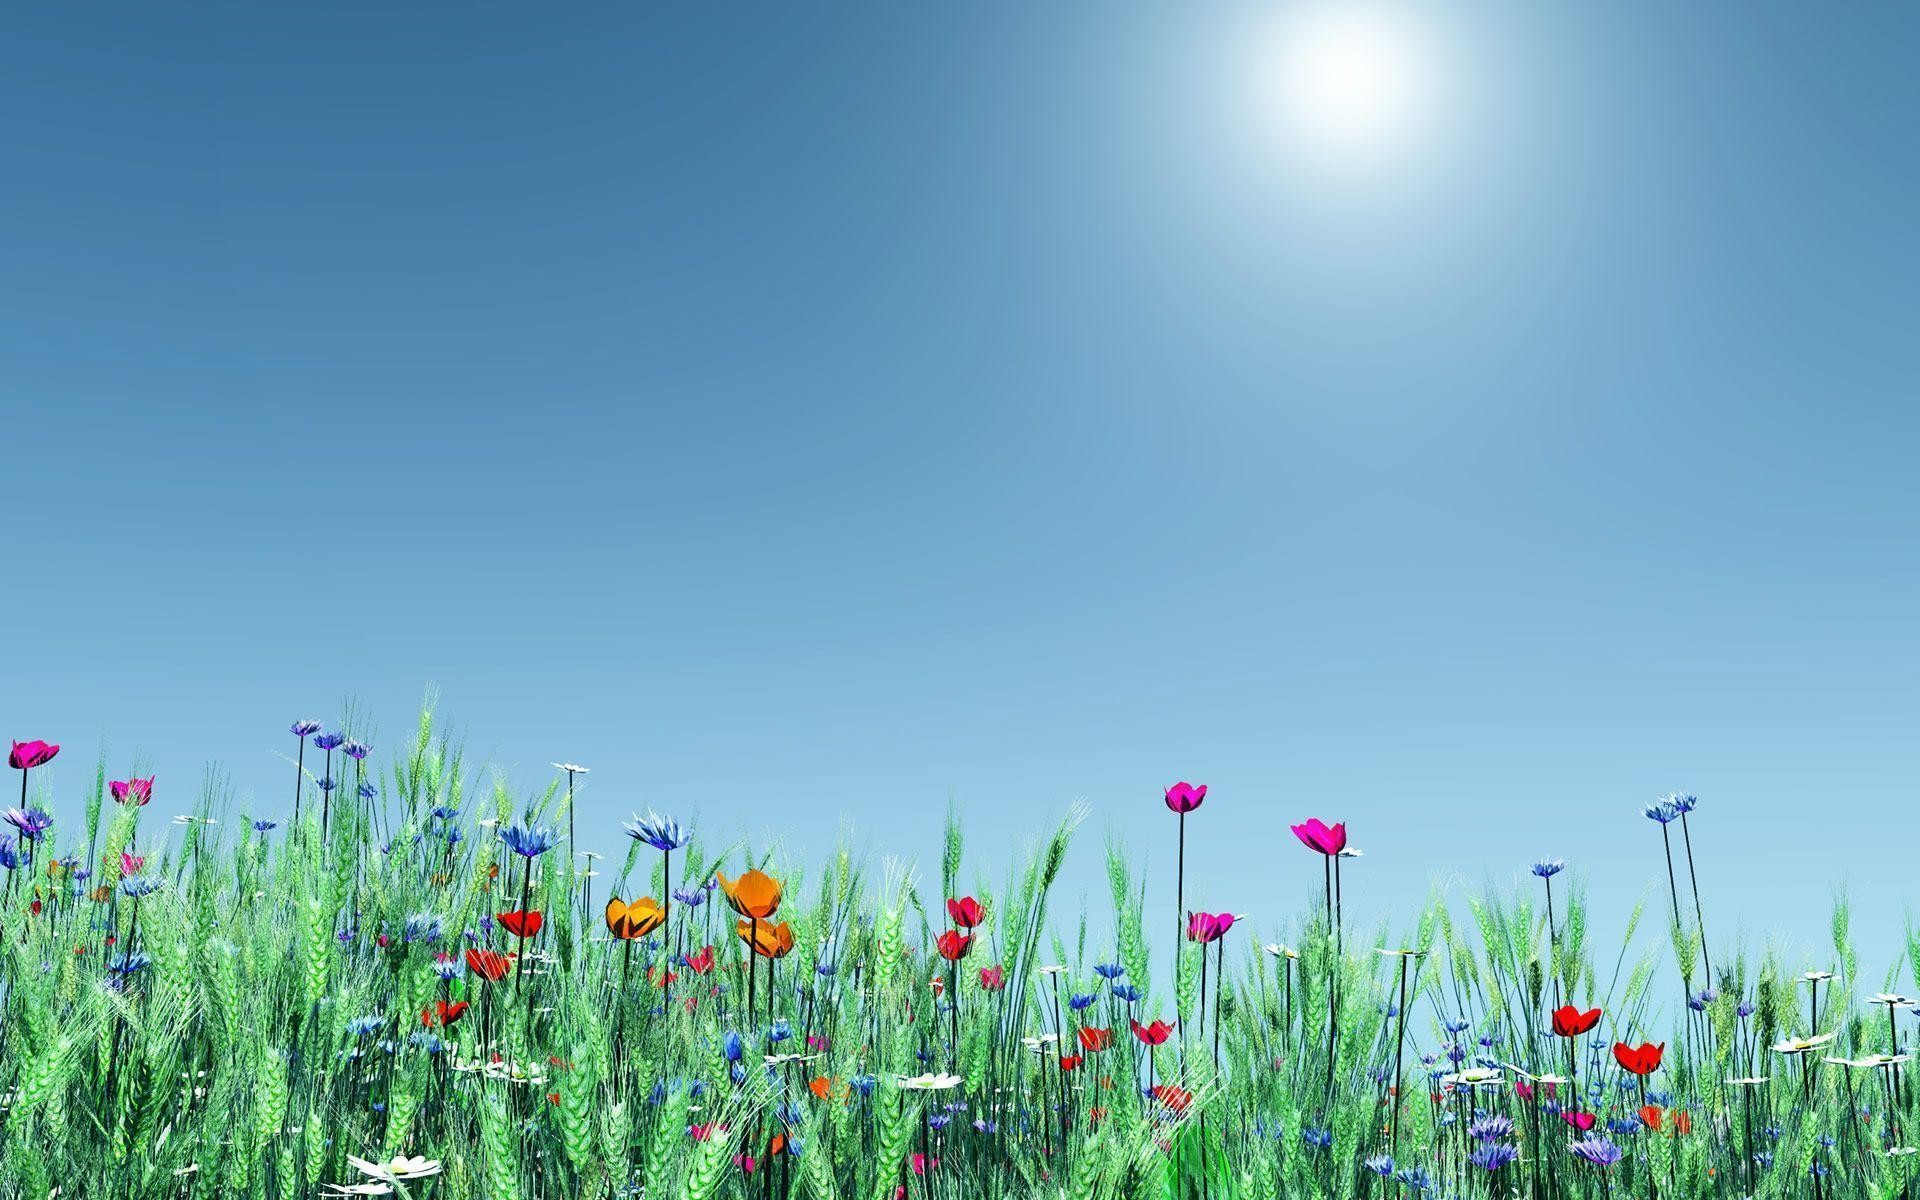 spring flowers background desktop ·①